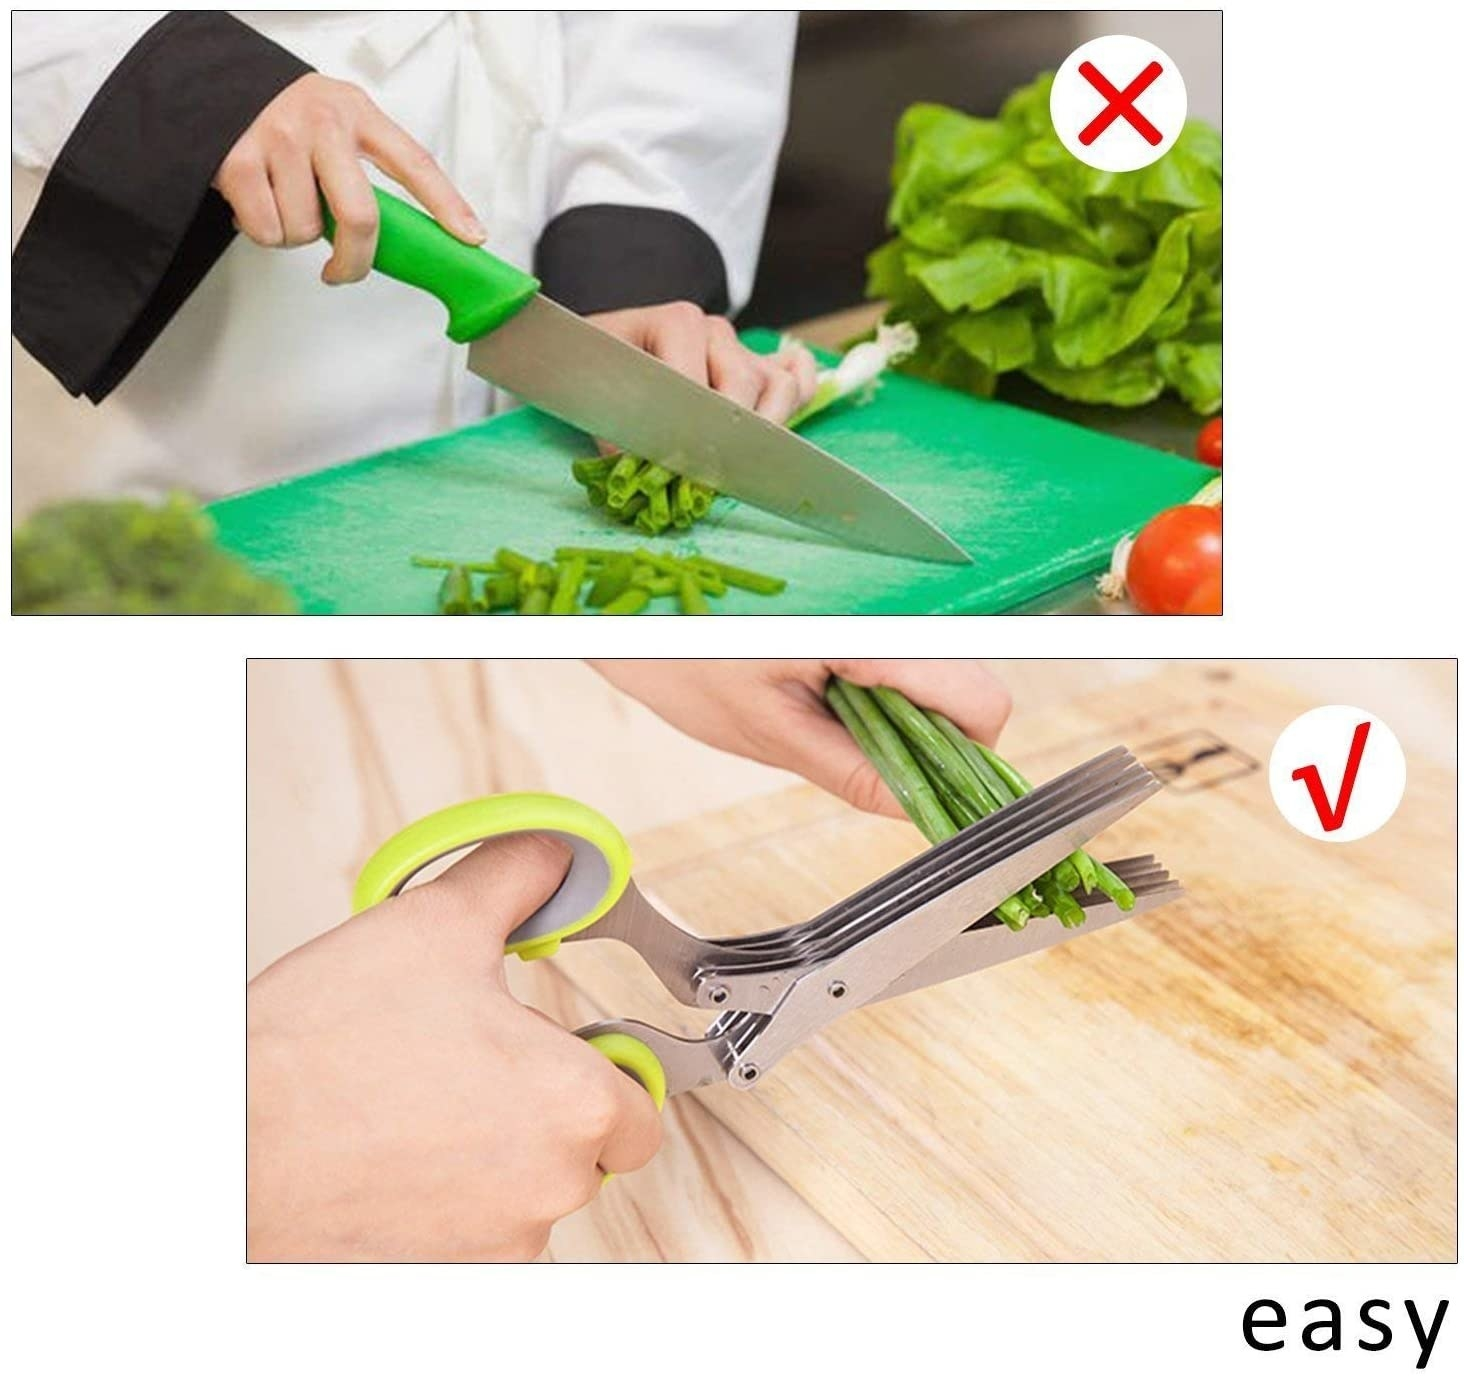 person using the scissors to cut green onions